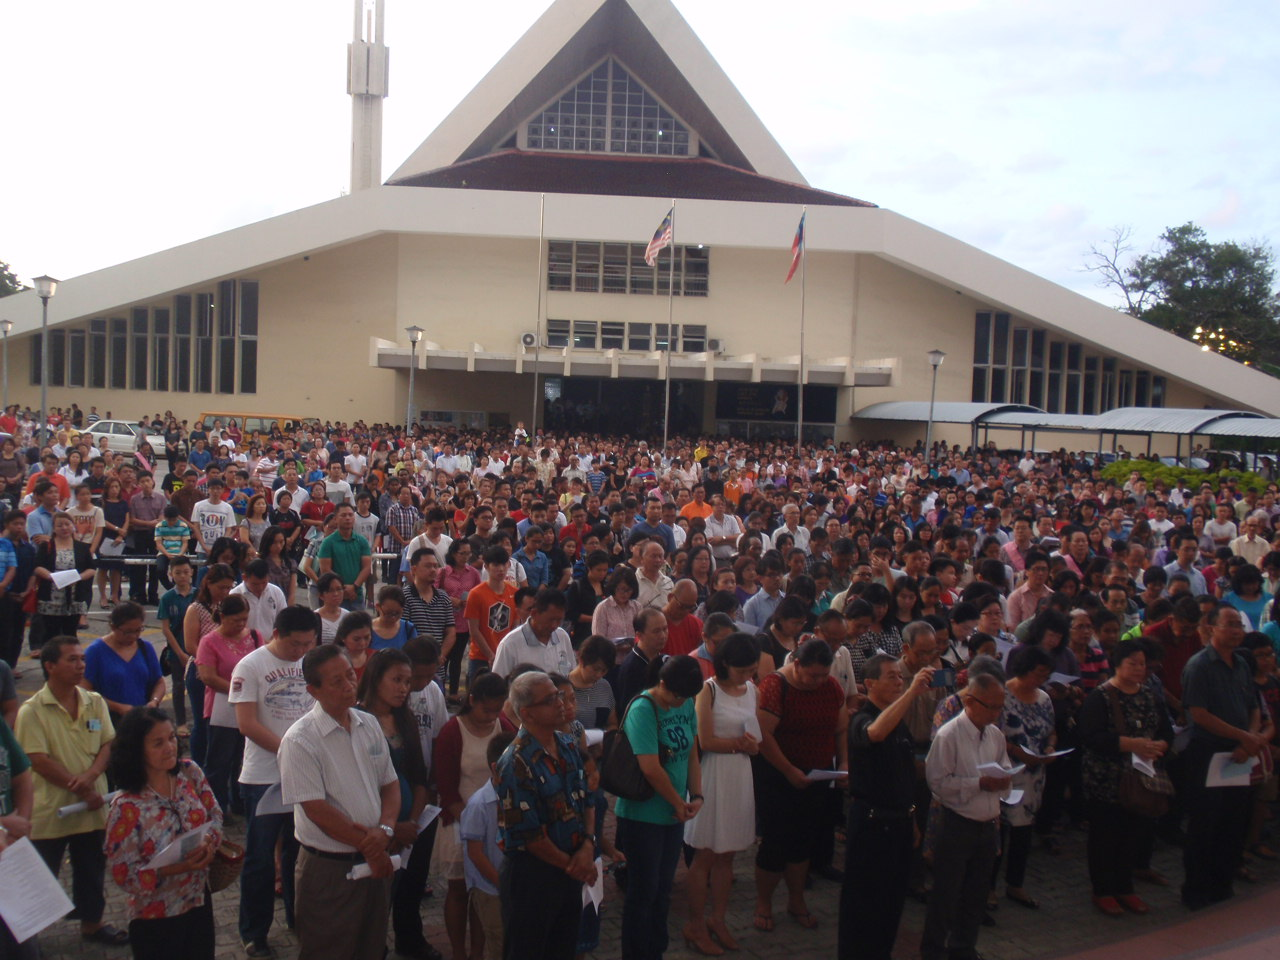 The crowd gather in front of the parish centre foyer for the rite of opening of the Holy Door.